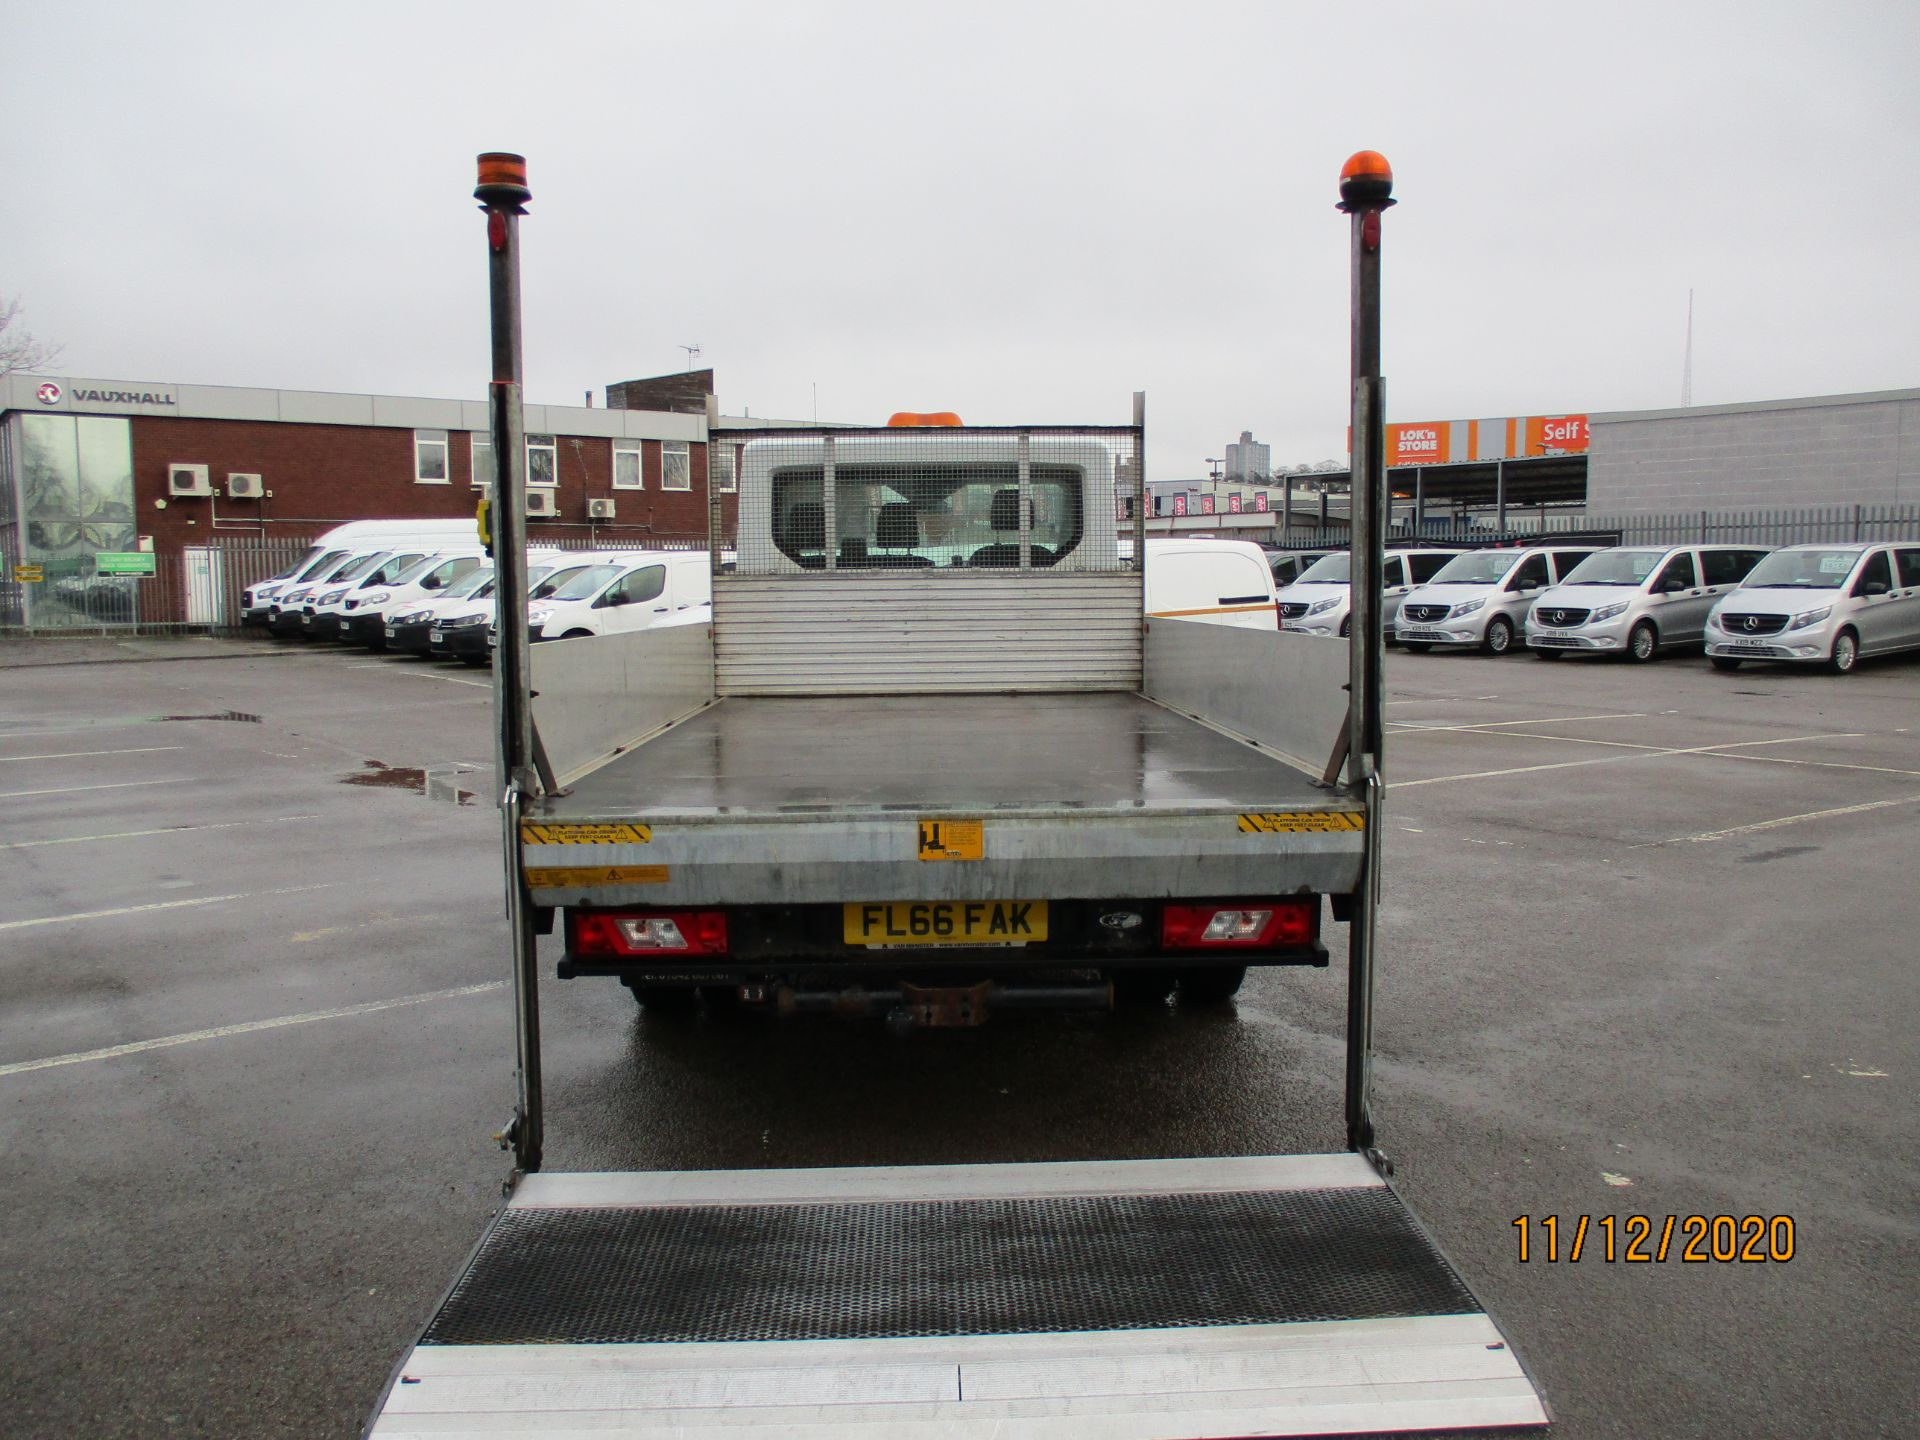 2016 Ford Transit 2.2 Tdci 125Ps Chassis Cab (FL66FAK) Image 10